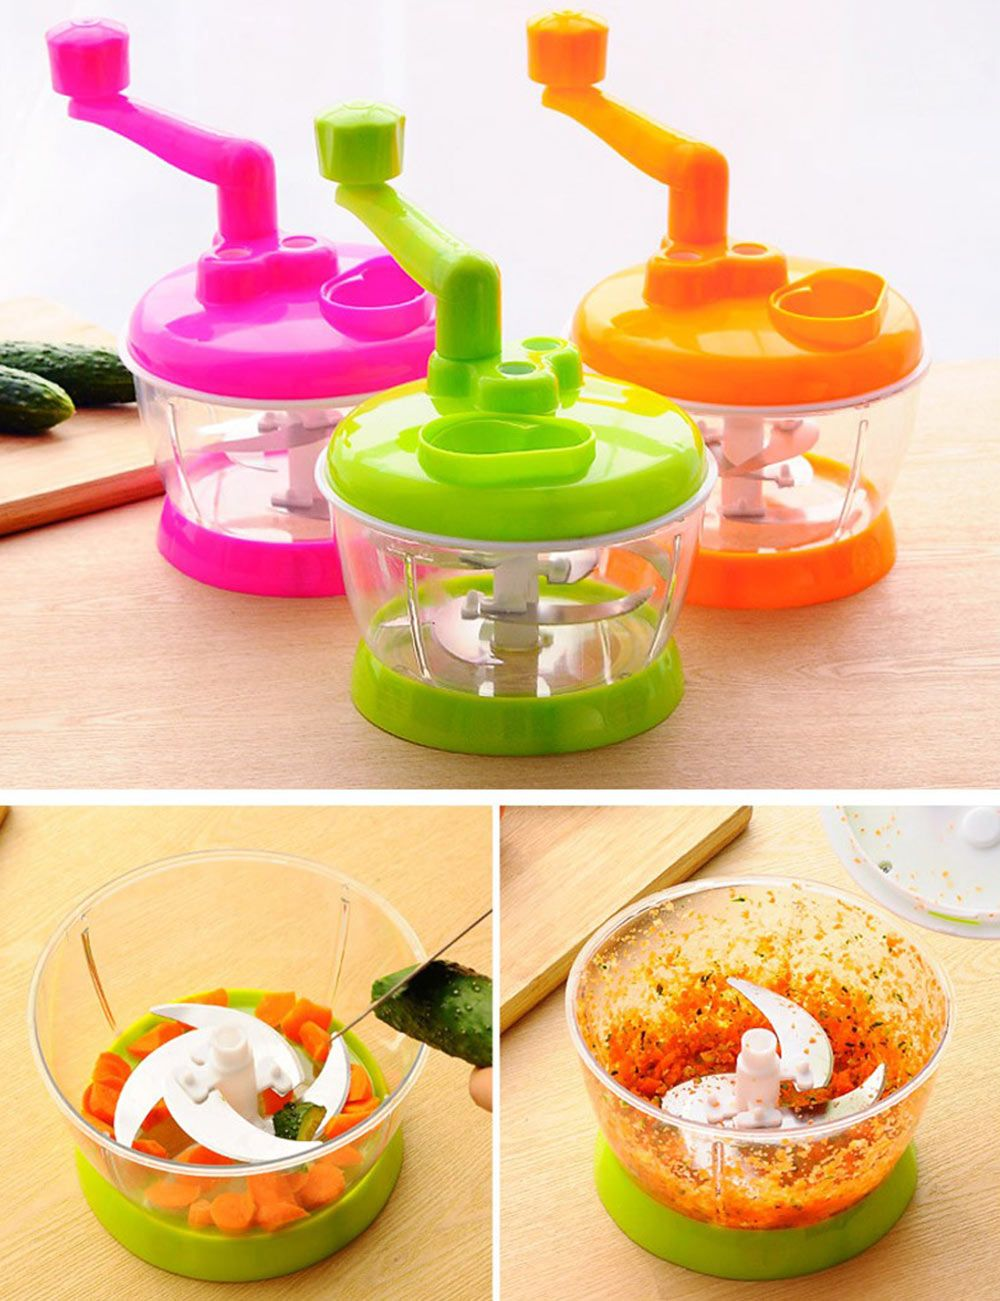 Multi-functional Vegetable Chopper Kitchen Fruit Food Shredder Helper